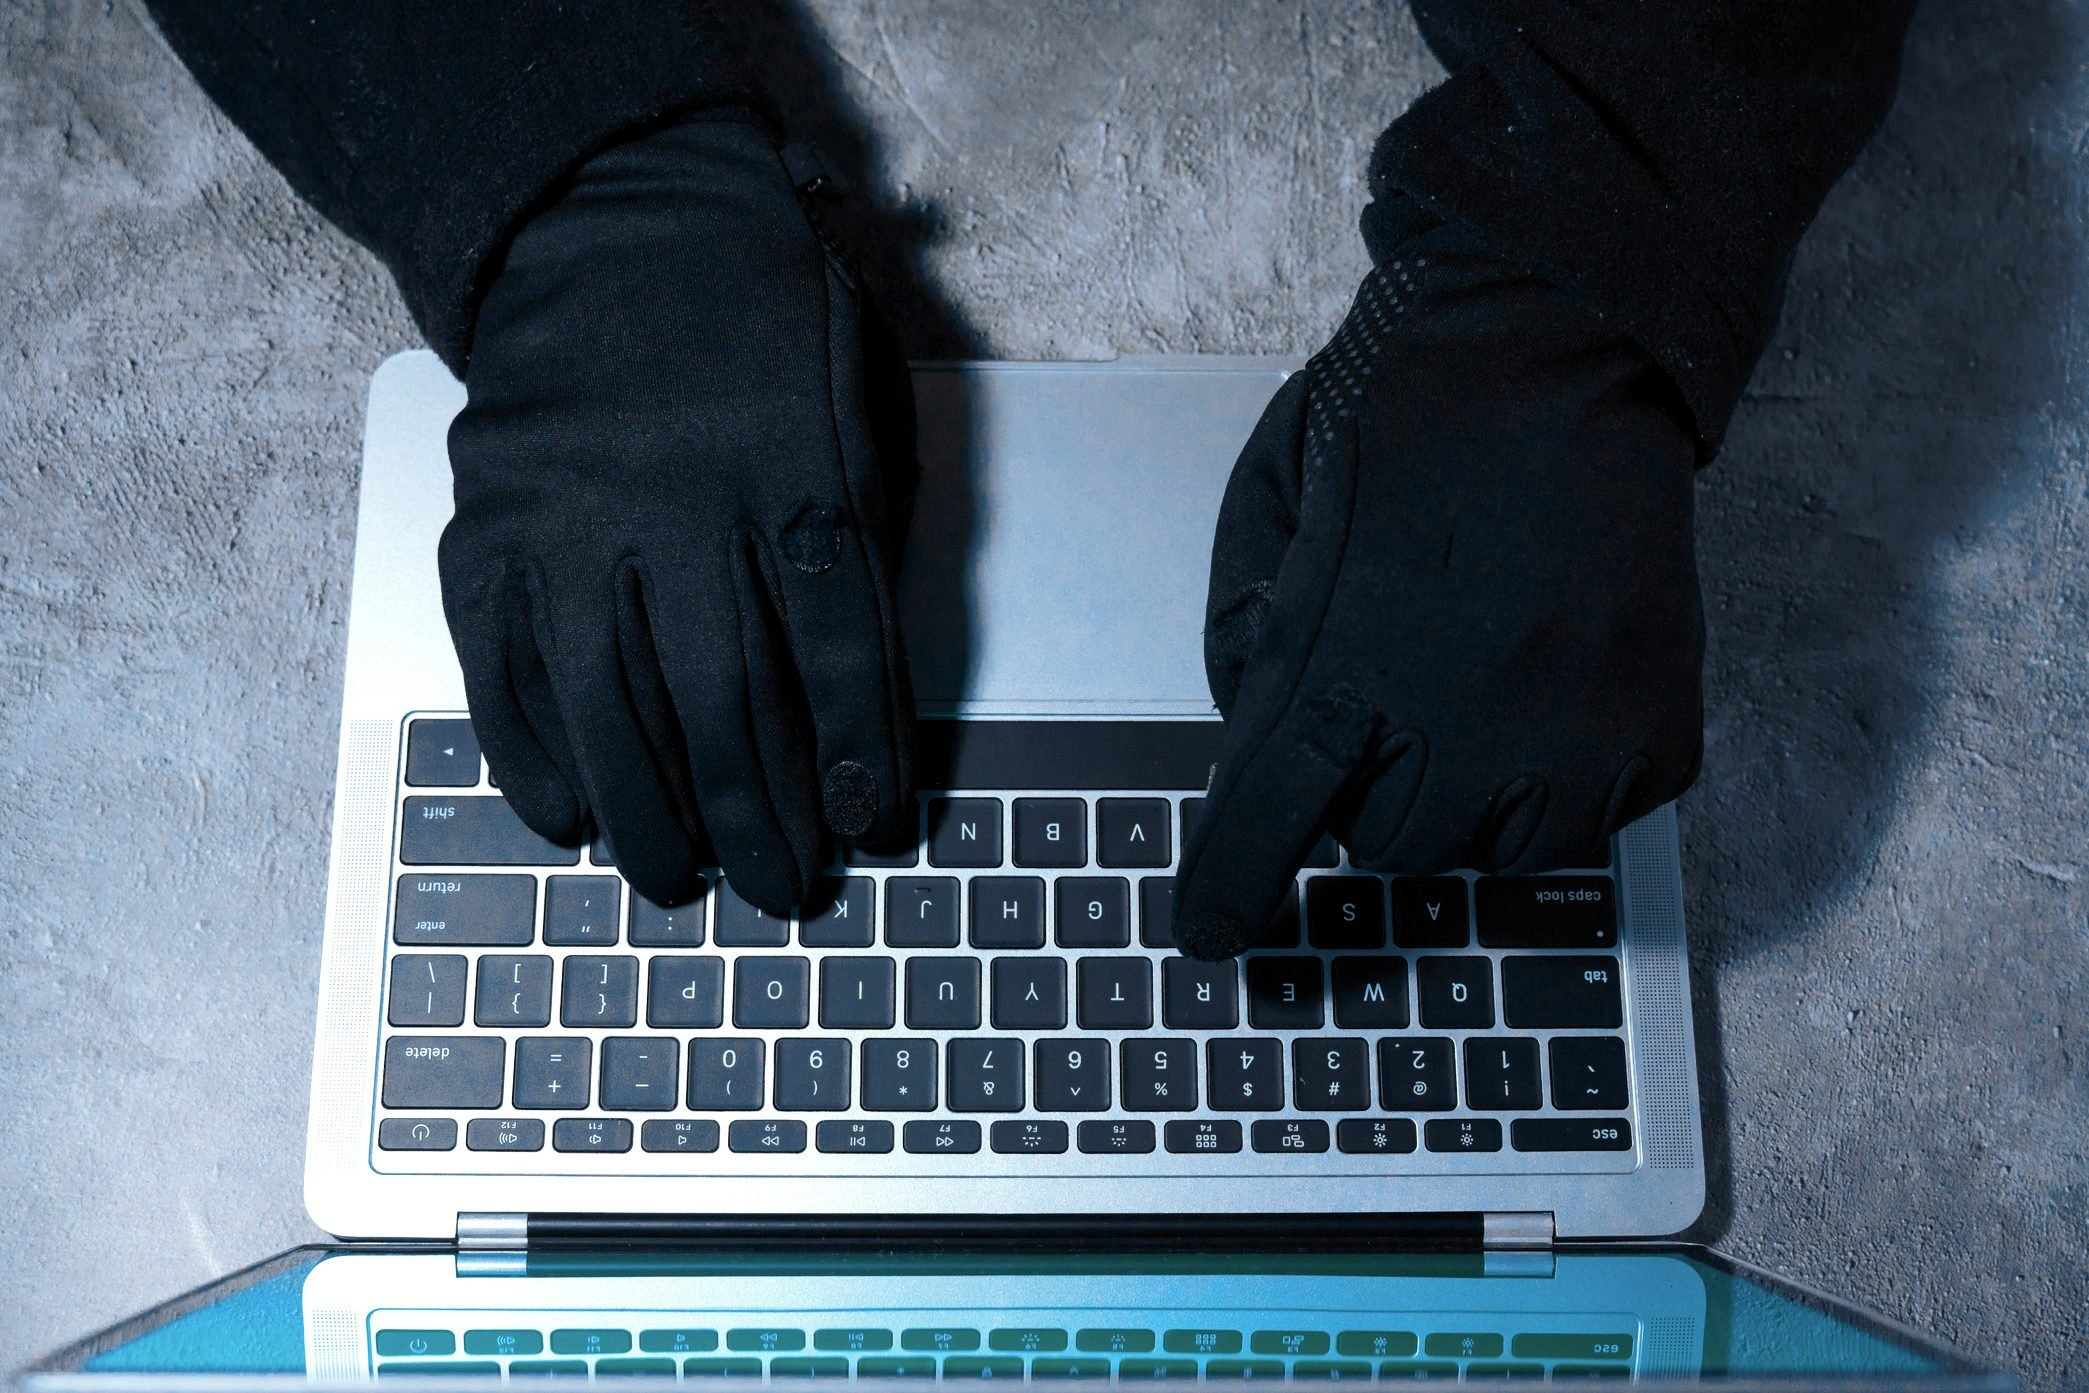 hacker identity theft social security credit cards